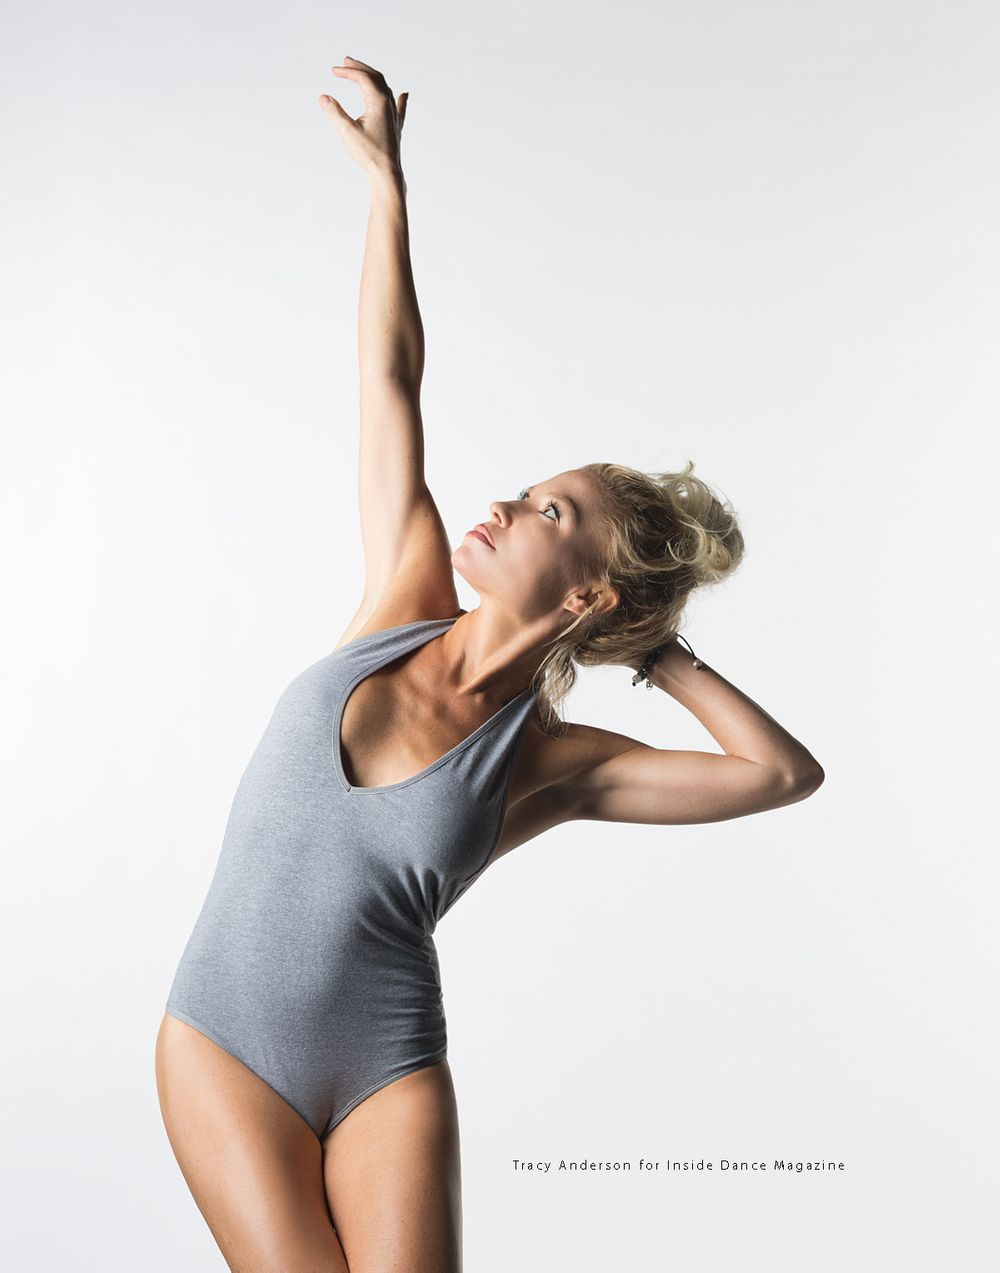 Tracy Anderson by Cassandra Plavoukos